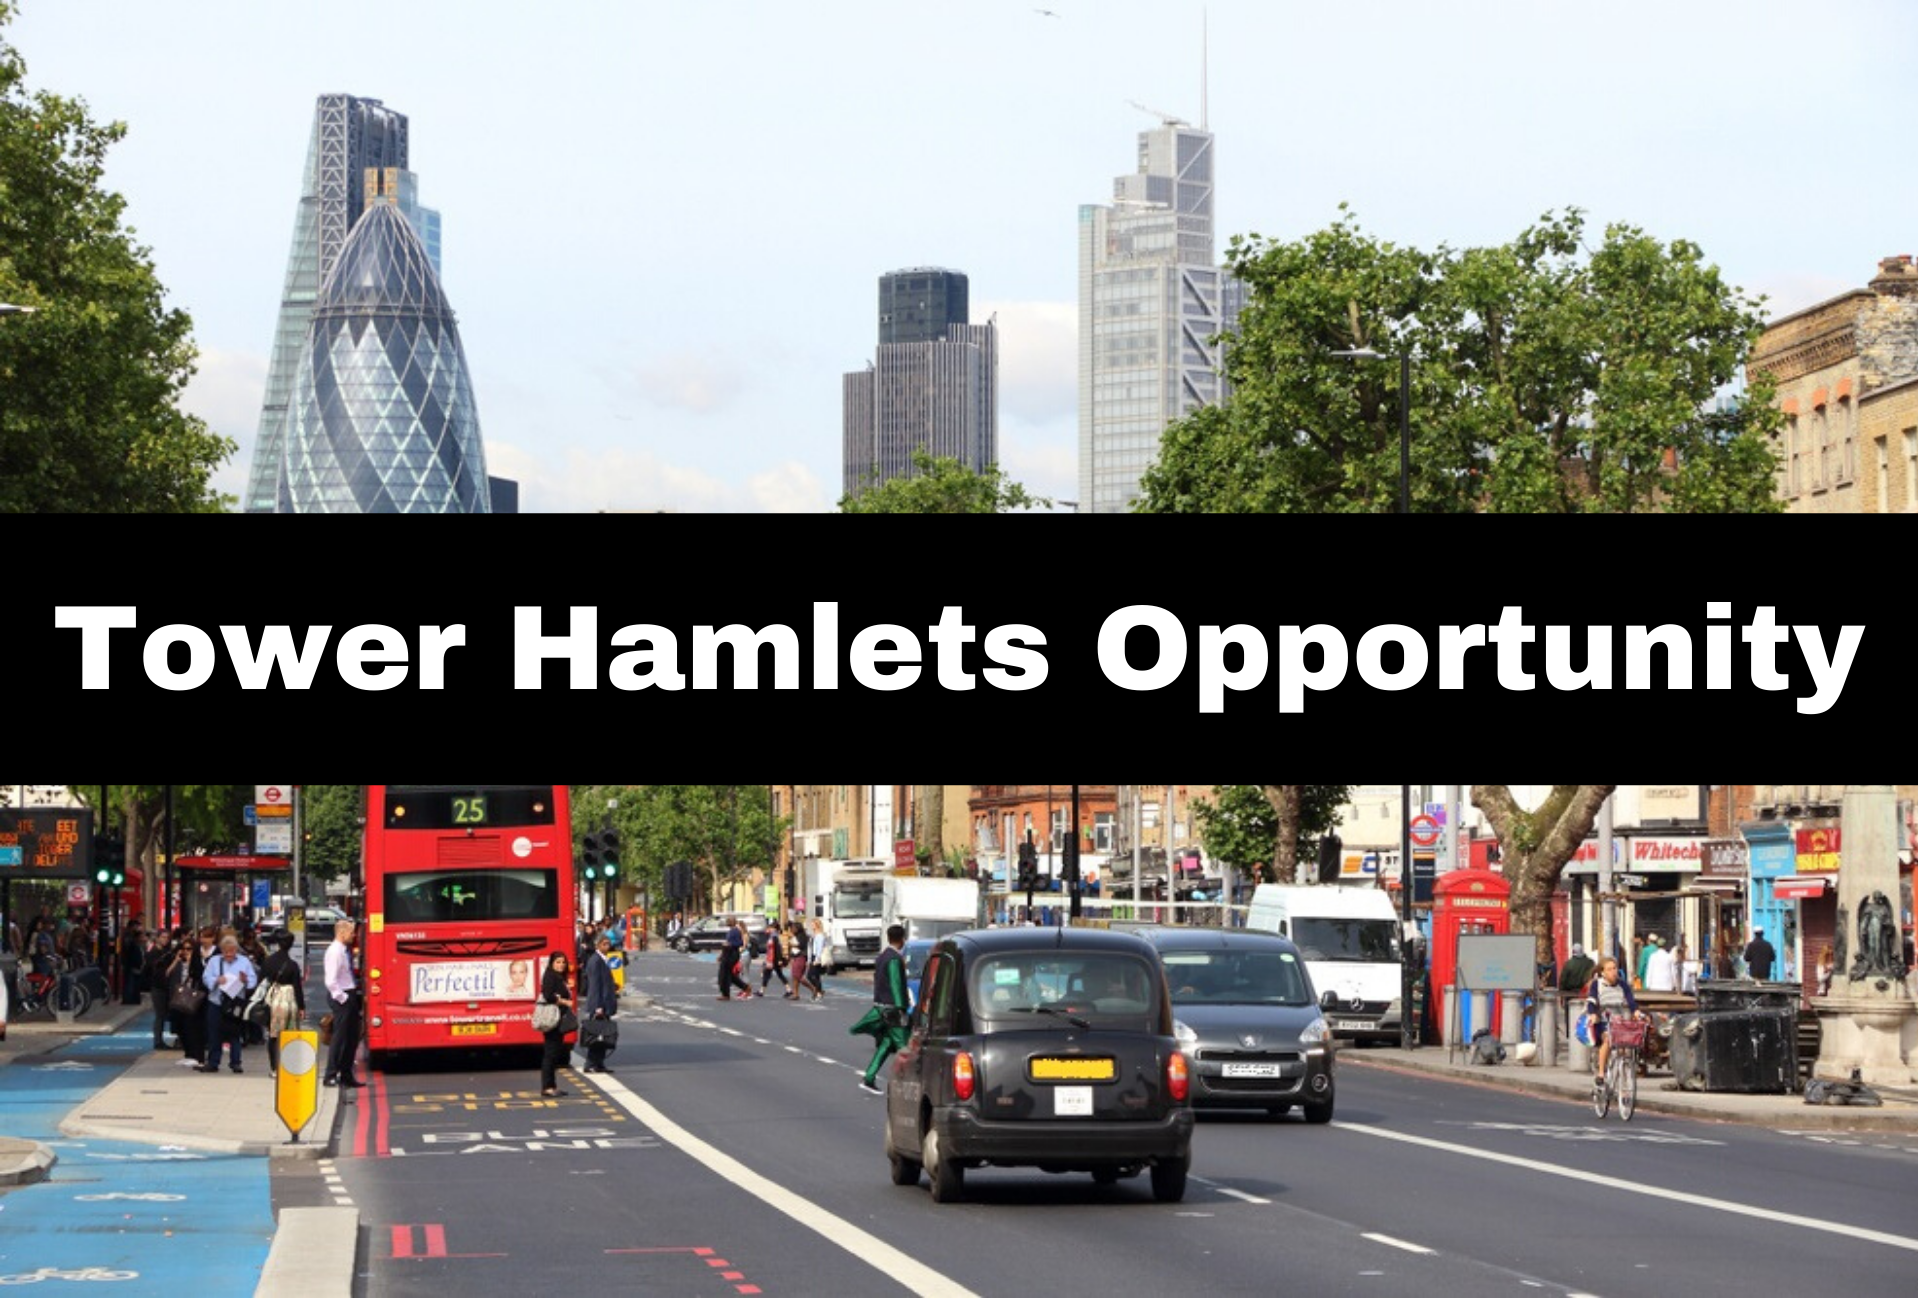 Tower Hamlets Opportunity